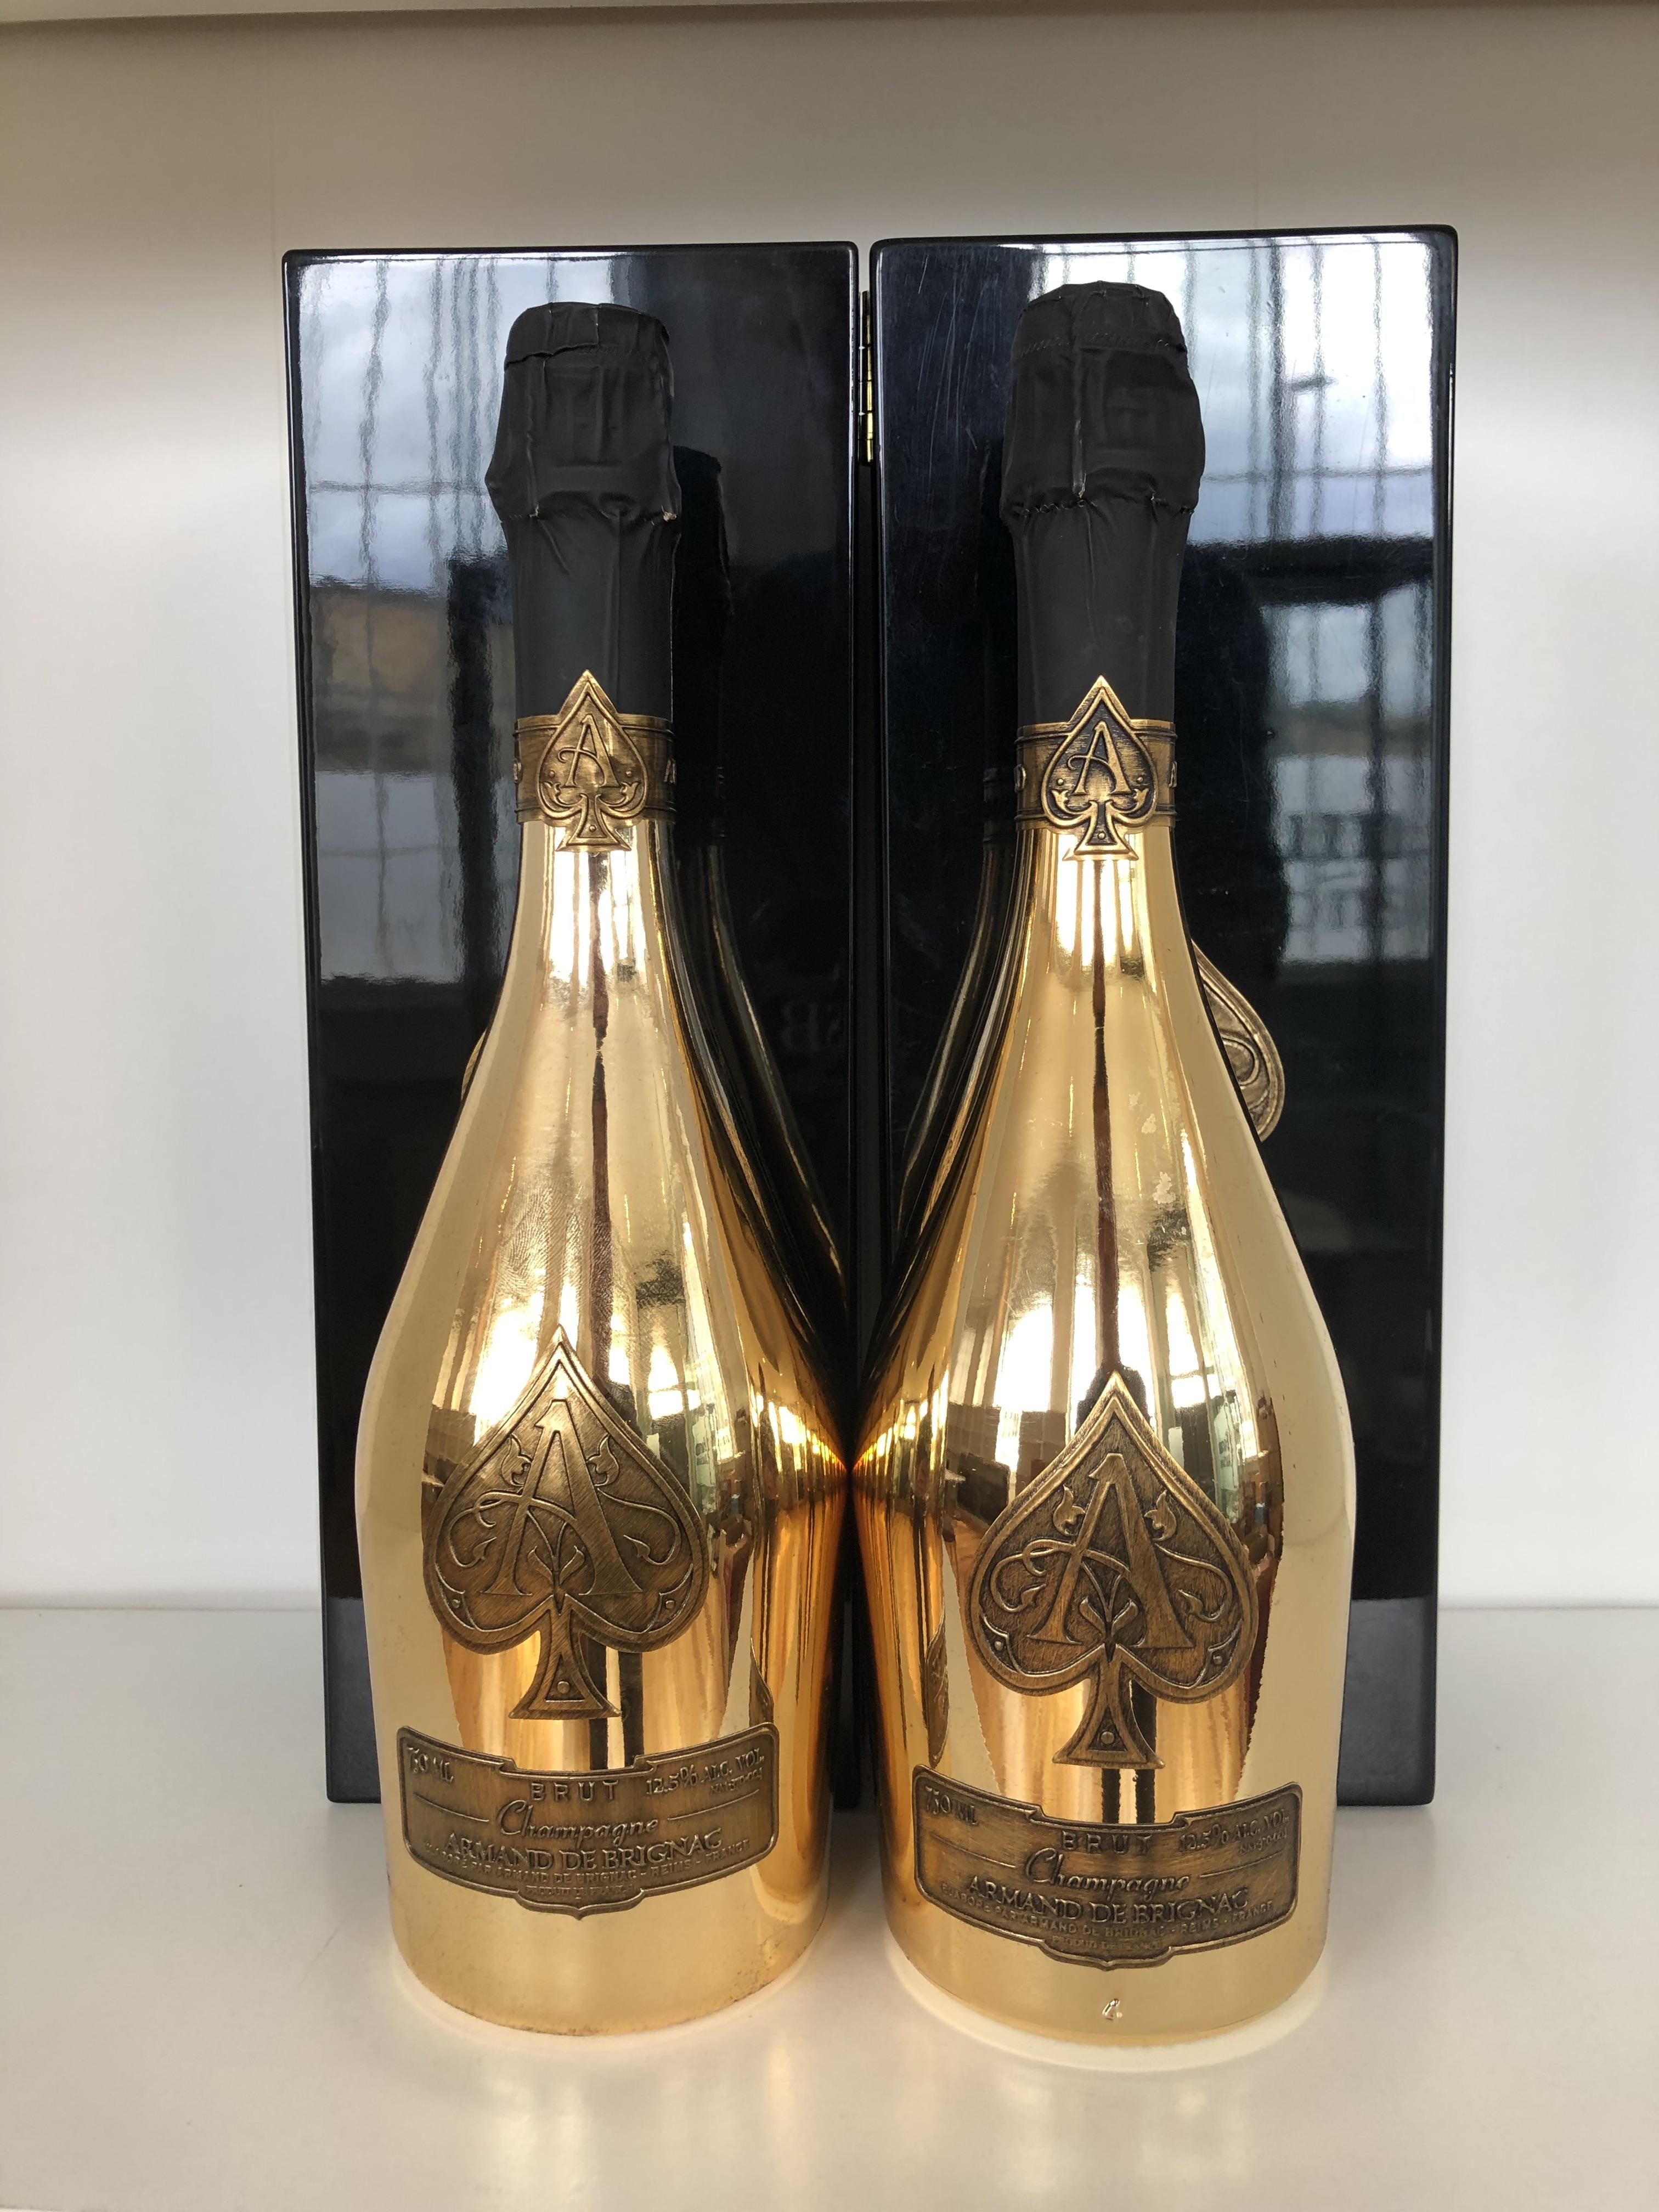 Lot 32 - NV Ace of Spades, Armand de Brignac, Champagne, France, 2 bottles